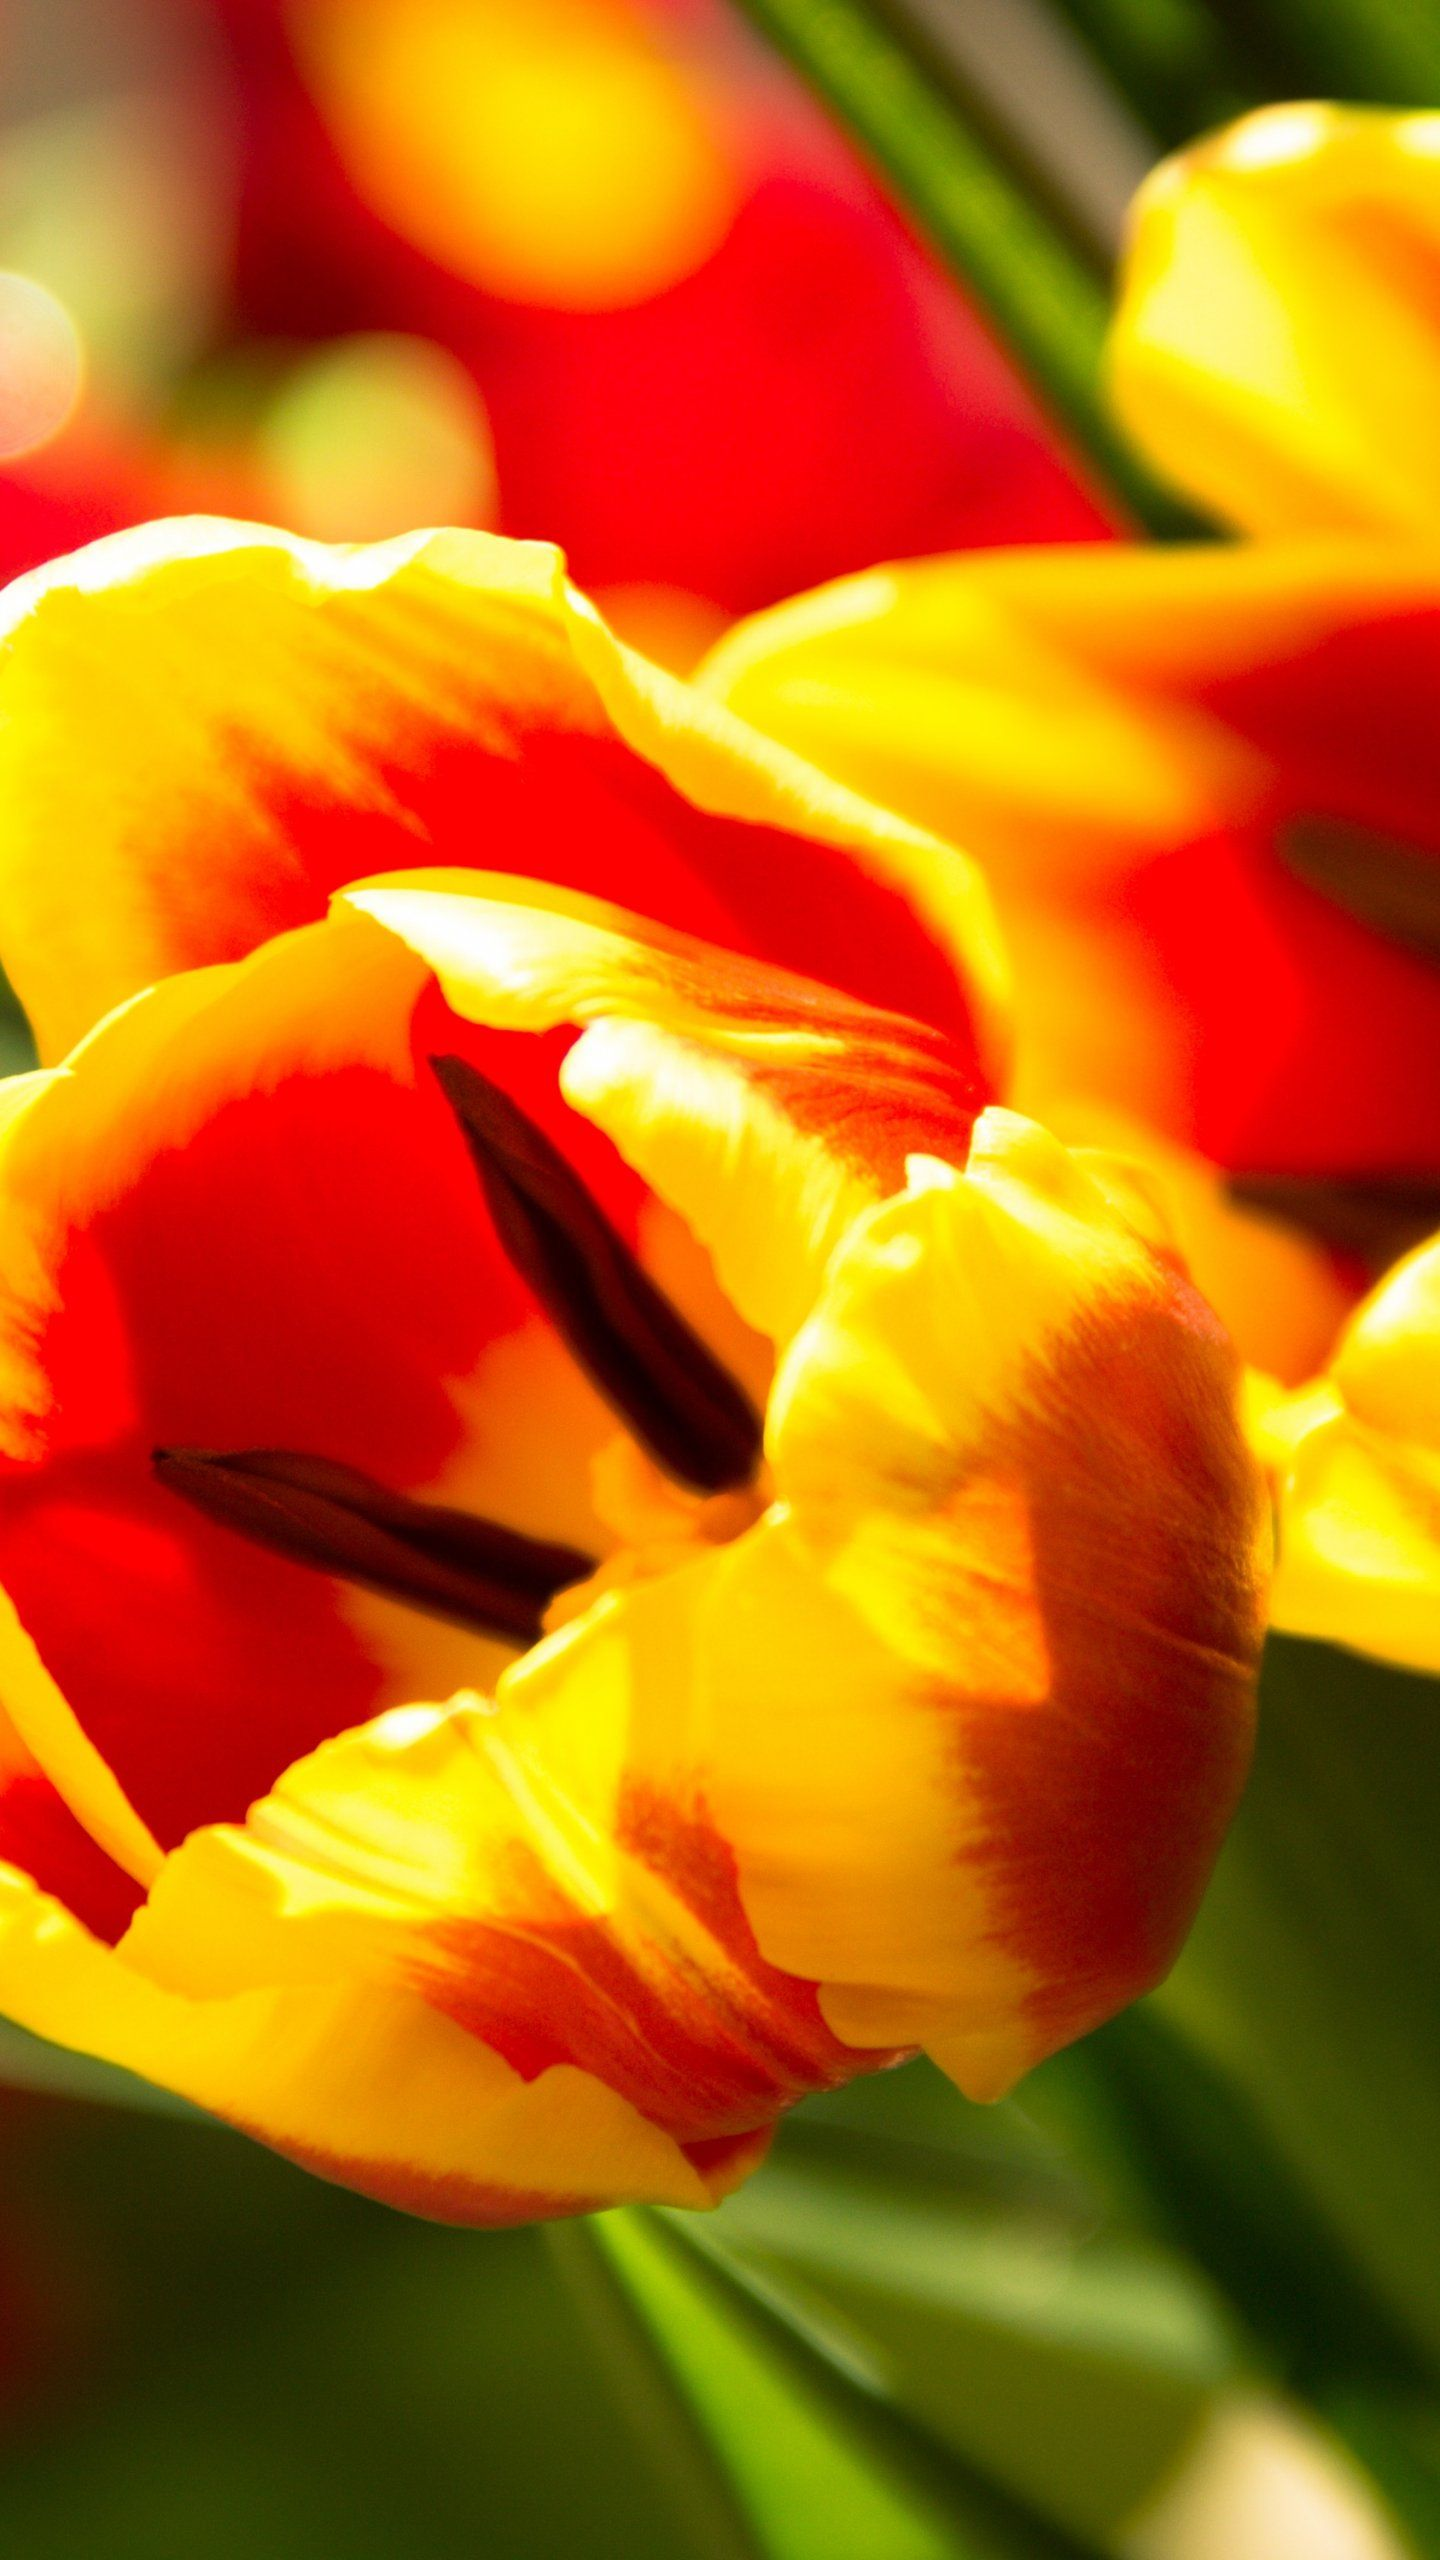 Tulip Wallpaper - iPhone, Android ...